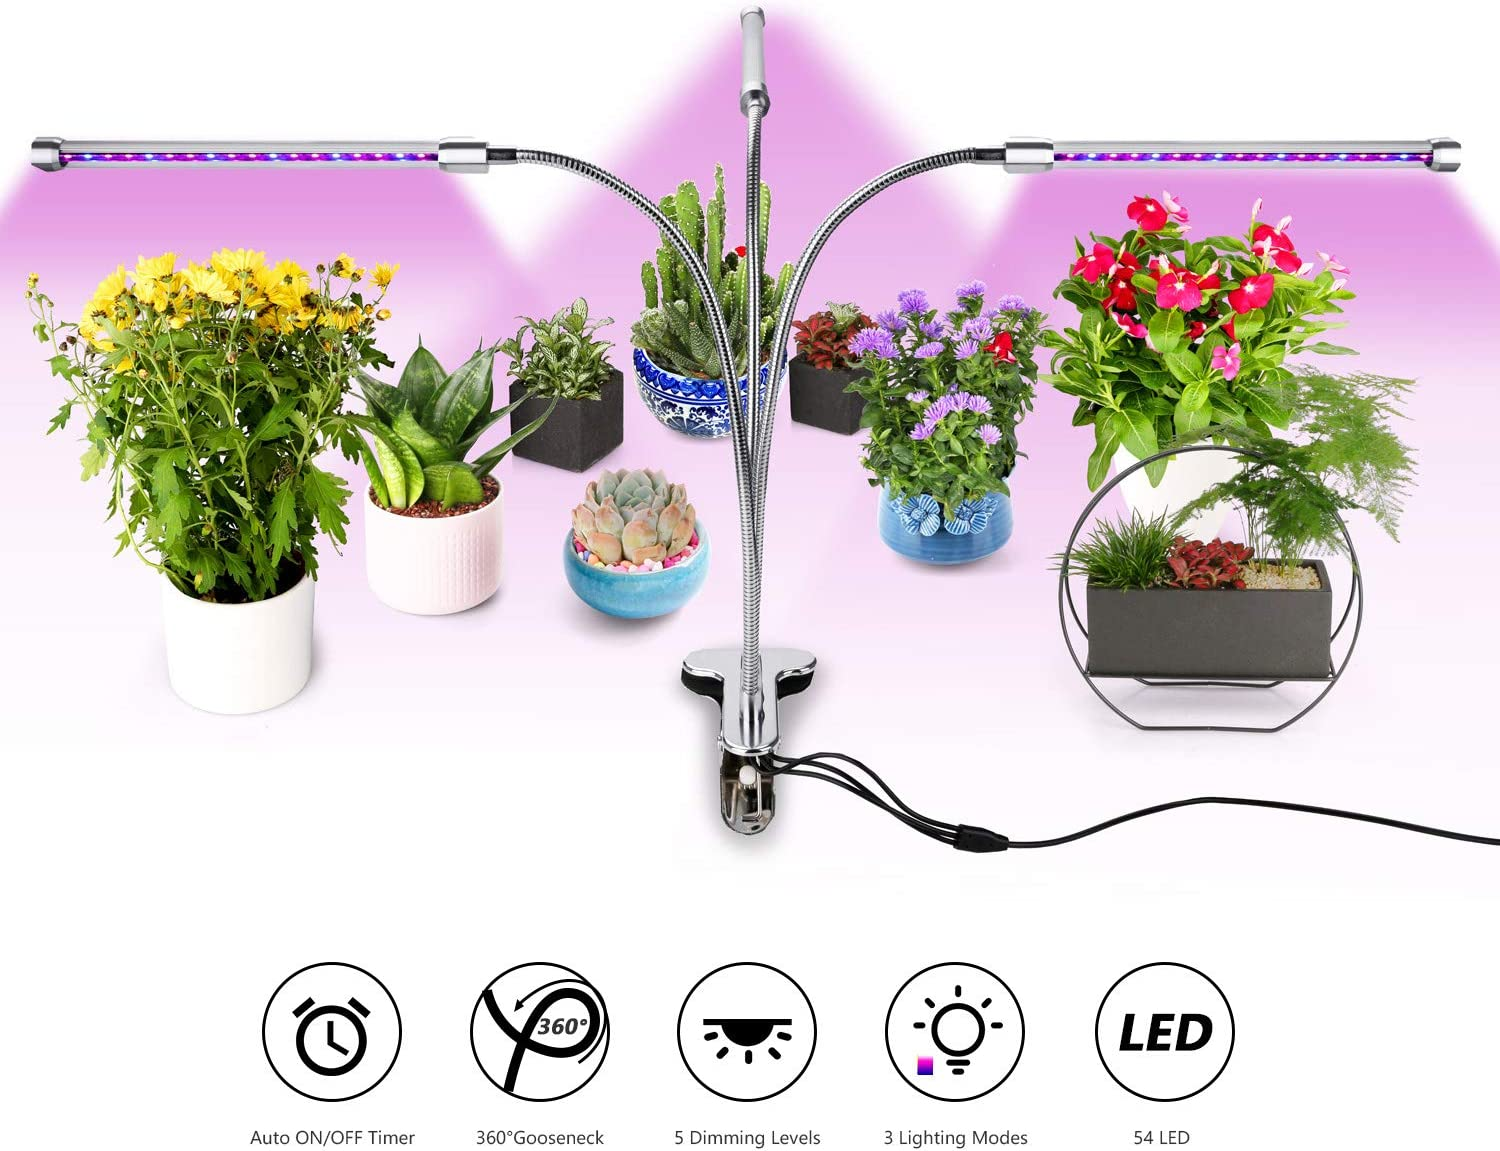 Grow Light, Belle 27W Timing 54 LED 5 Dimmable Levels Plant Grow Lights for Indoor Plants with LED Lamp Bulbs Spectrum, 3 6 12H Timer, 3 Switch Modes, Silver